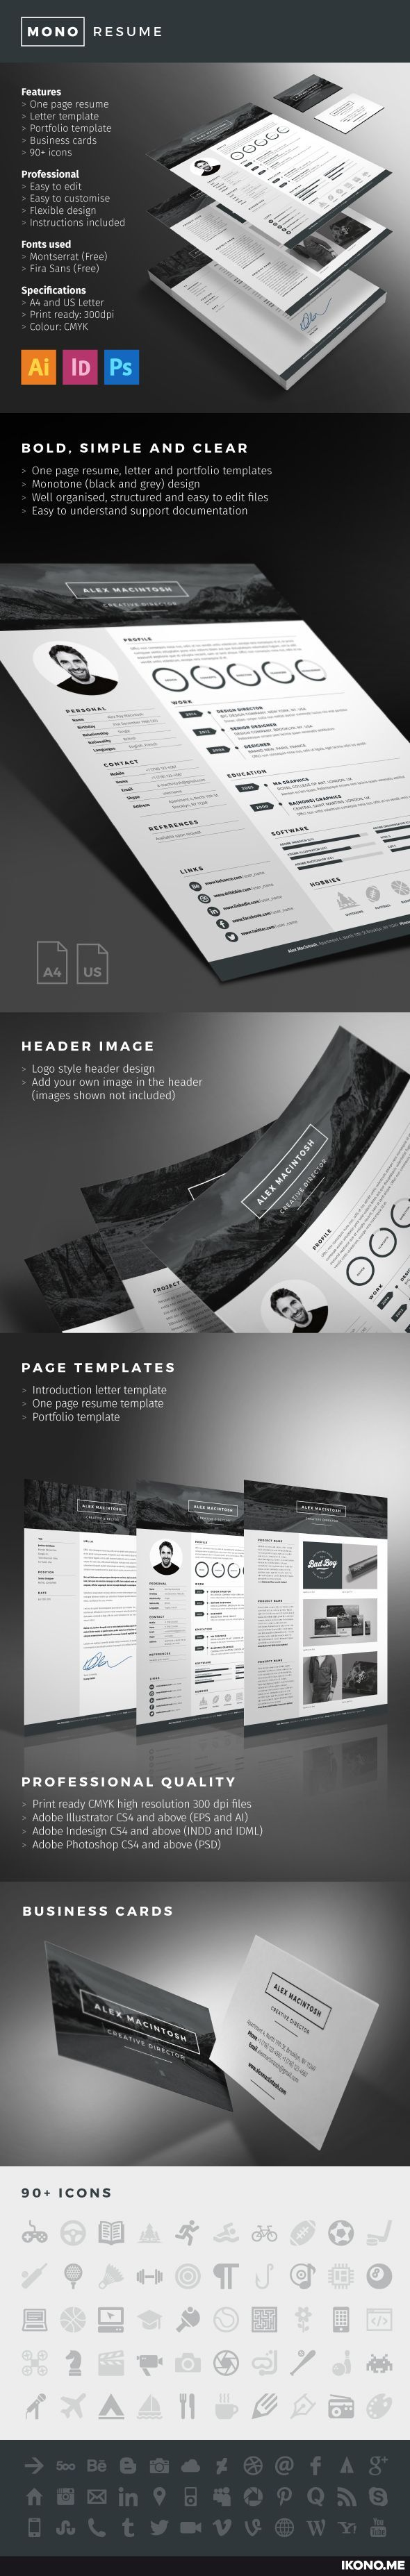 entry level graphic design resume examples%0A For more resume design inspirations click here   http   www pinterest com sheppardaaron designresumes  Creative Resume  Design  Resume Style  Resume Design